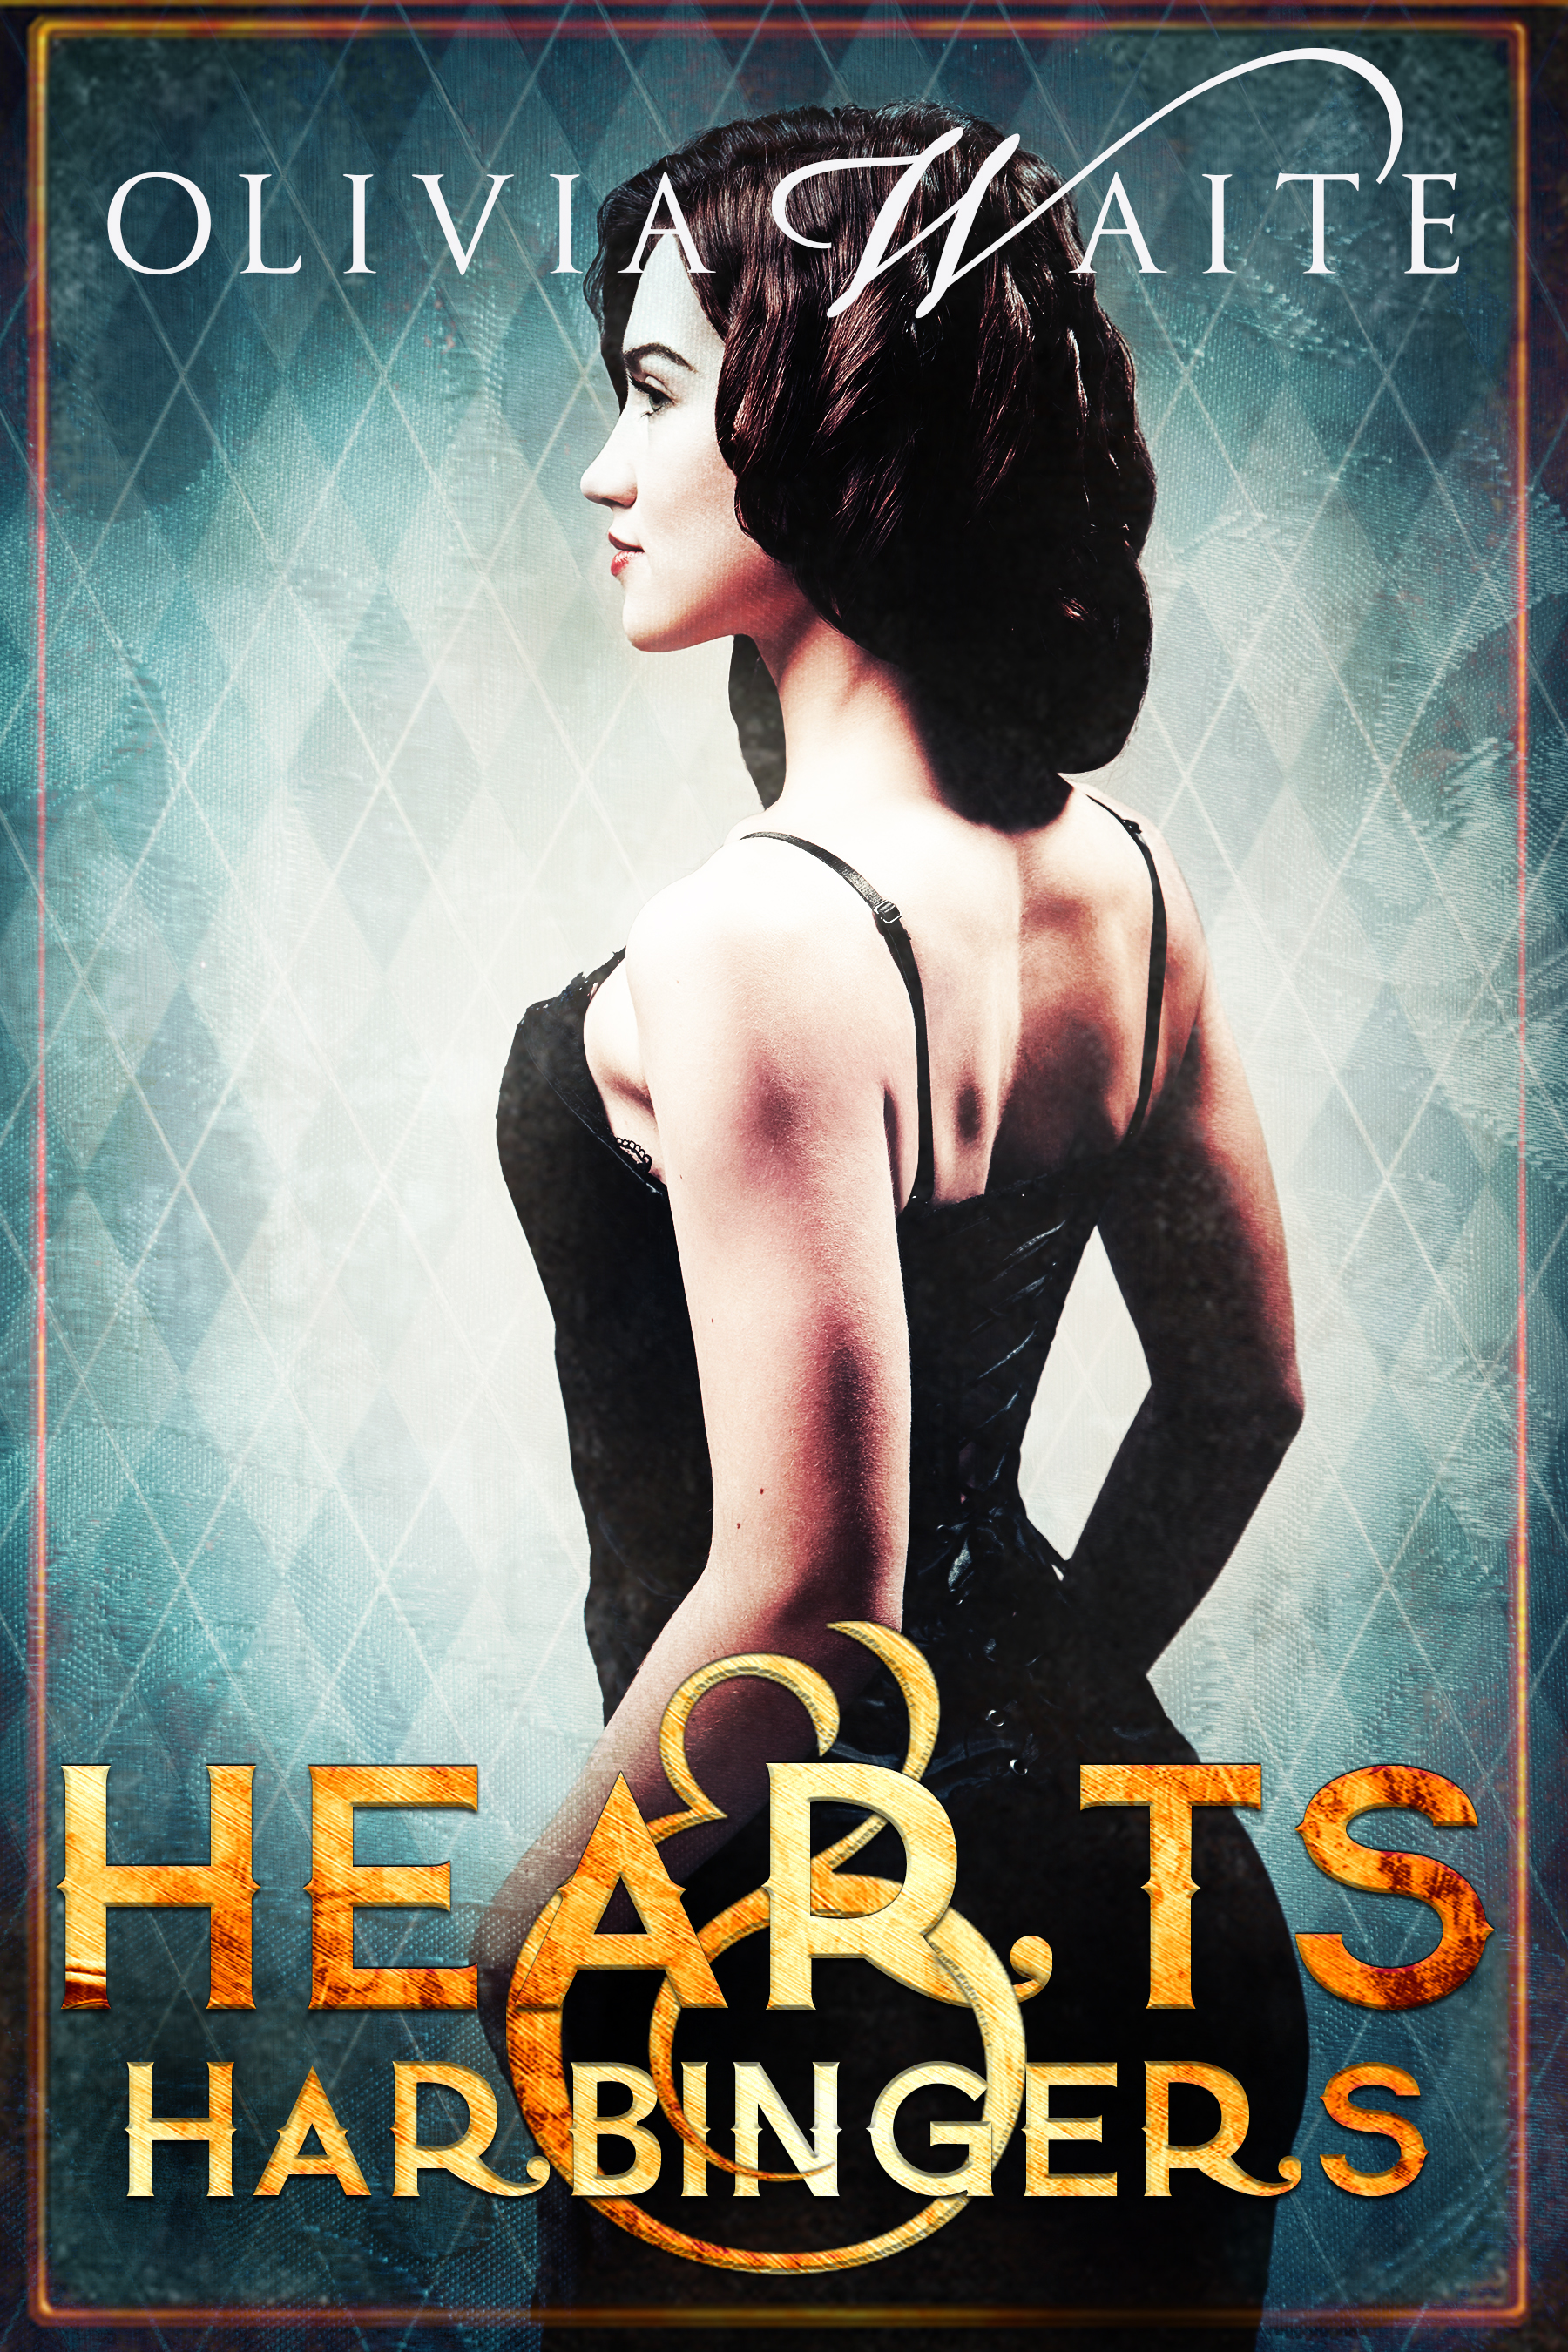 Hearts and Harbingers - On the very outskirts of polite society, Millicent Harbinger has always found a way to cover the gaming debts of her wastrel brother Duncan. His most recent losing streak is bound to ruin them, however, and her brother's solution is to arrange for Mill to marry the odious Lord Wart. In desperation, Mill decides to sell her virtue at a well-reputed brothel and kill two birds with one stone: she will have enough money to cover the debt, and her status as a fallen woman will dissuade Lord Wart from claiming her as his bride.Jasper Goldeby, Marquess of Holder, takes one look at Mill's piercing green eyes and purchases her favors at double the asking price—a fortune that could support the Harbingers for life. The night Mill and Jasper share astonishes and transforms them both…and Jasper quickly realizes one night could never be enough.